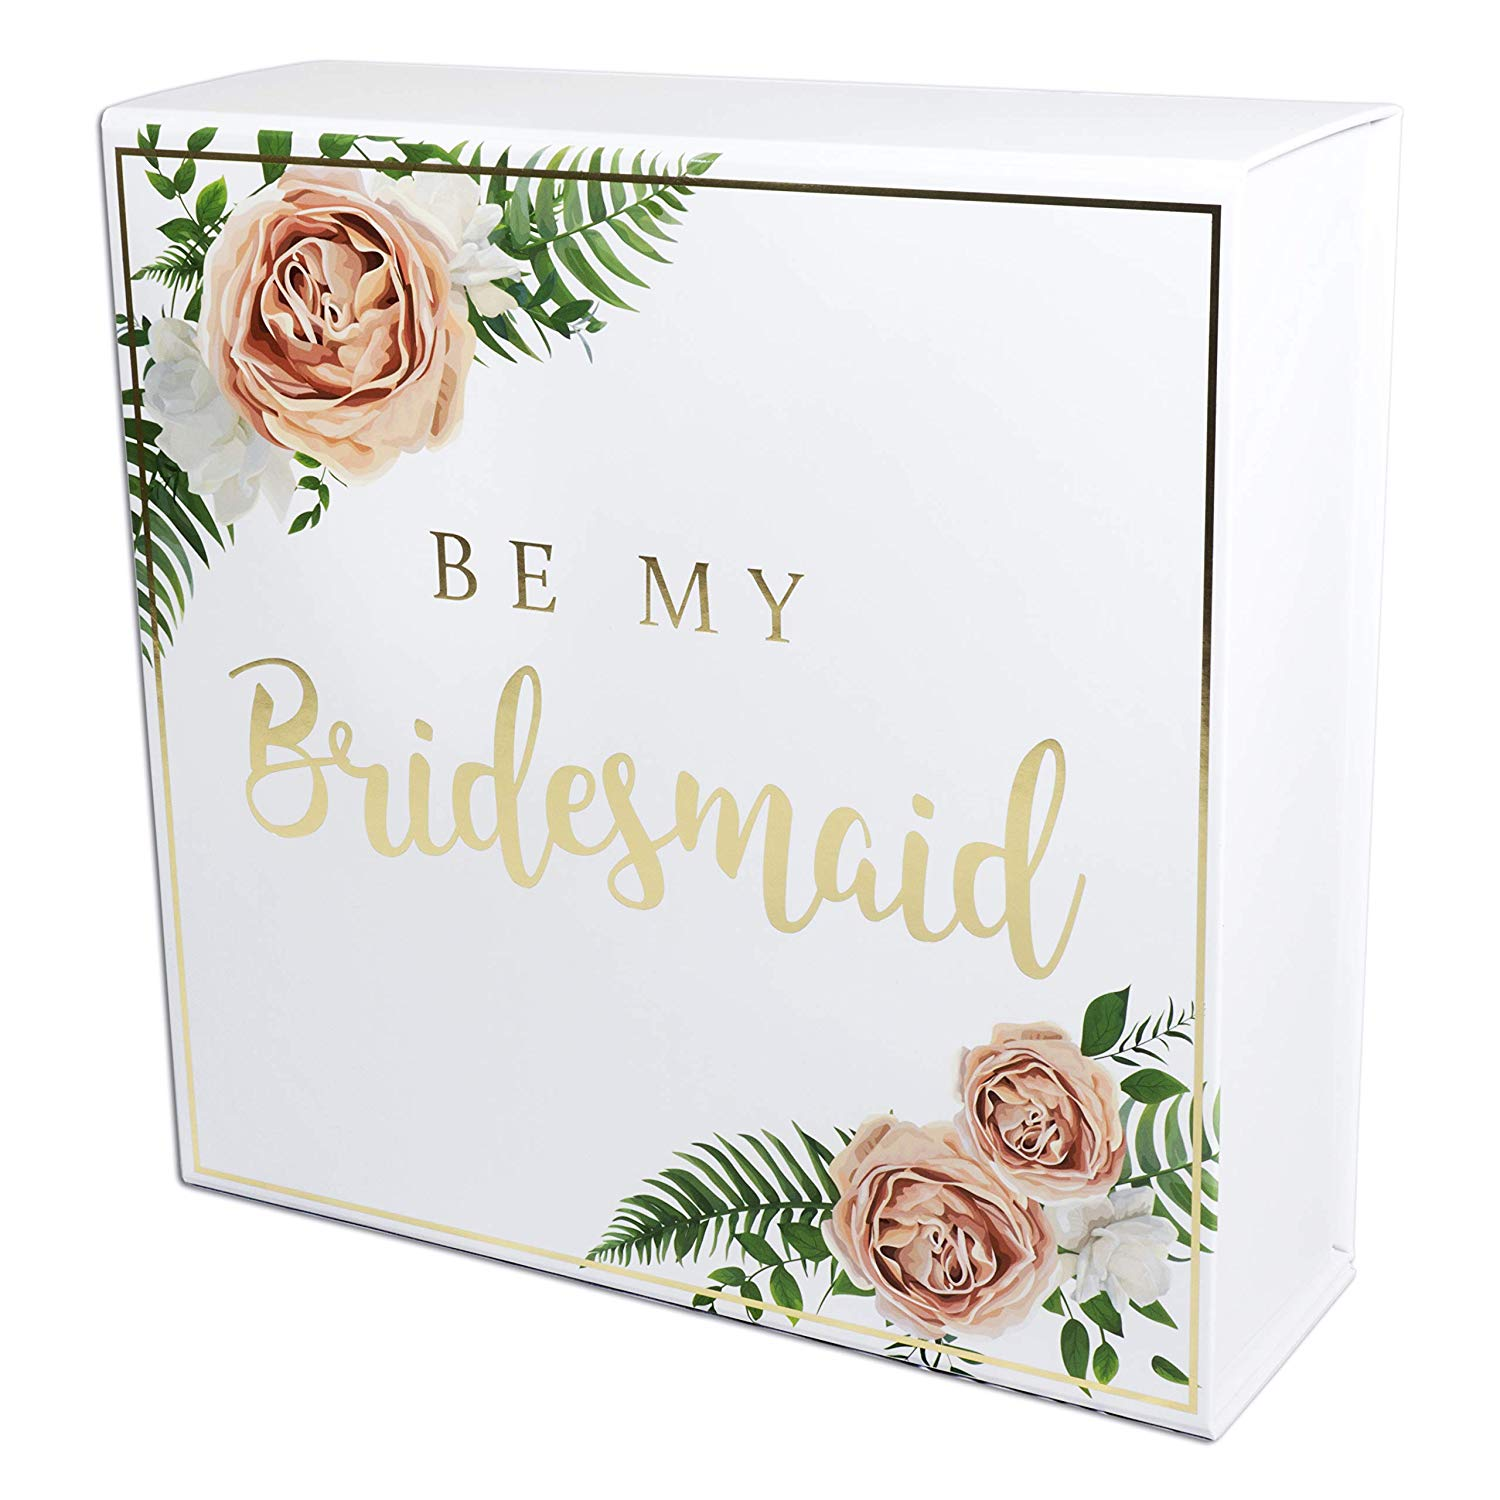 Roll over image to zoom in Blanche Bridesmaid Proposal Box with Gold Foiled Text | 1 Empty Box | Perfect for Will You Be My Bridesmaid Gift and Wedding Present